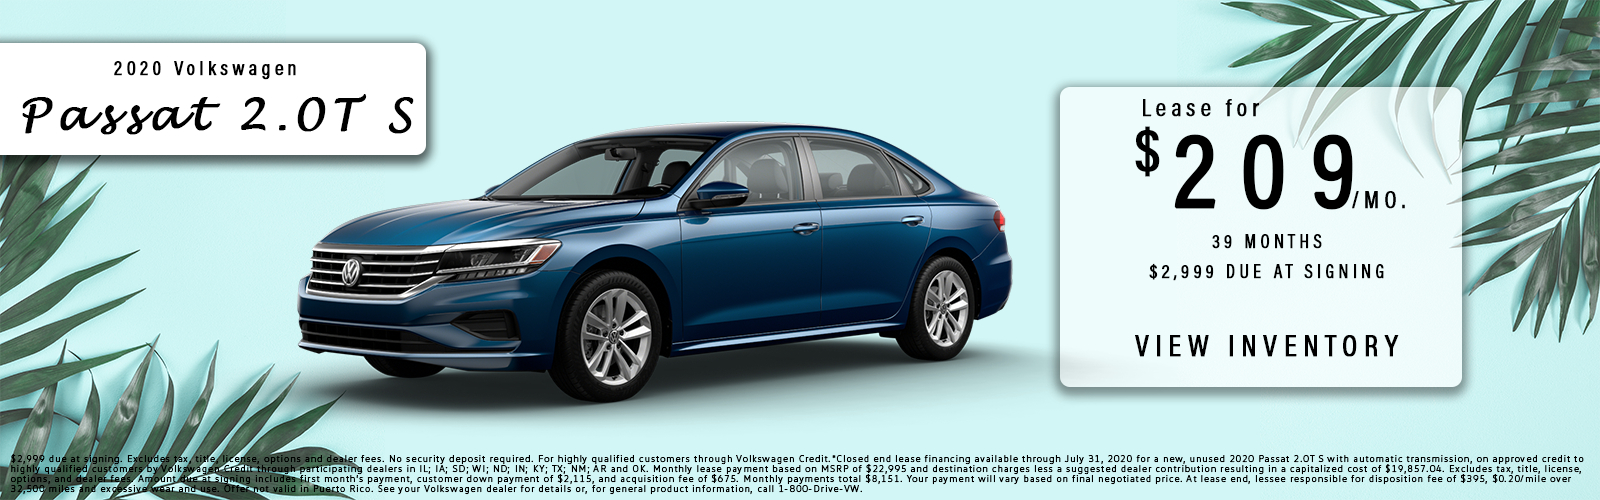 passat lease offer